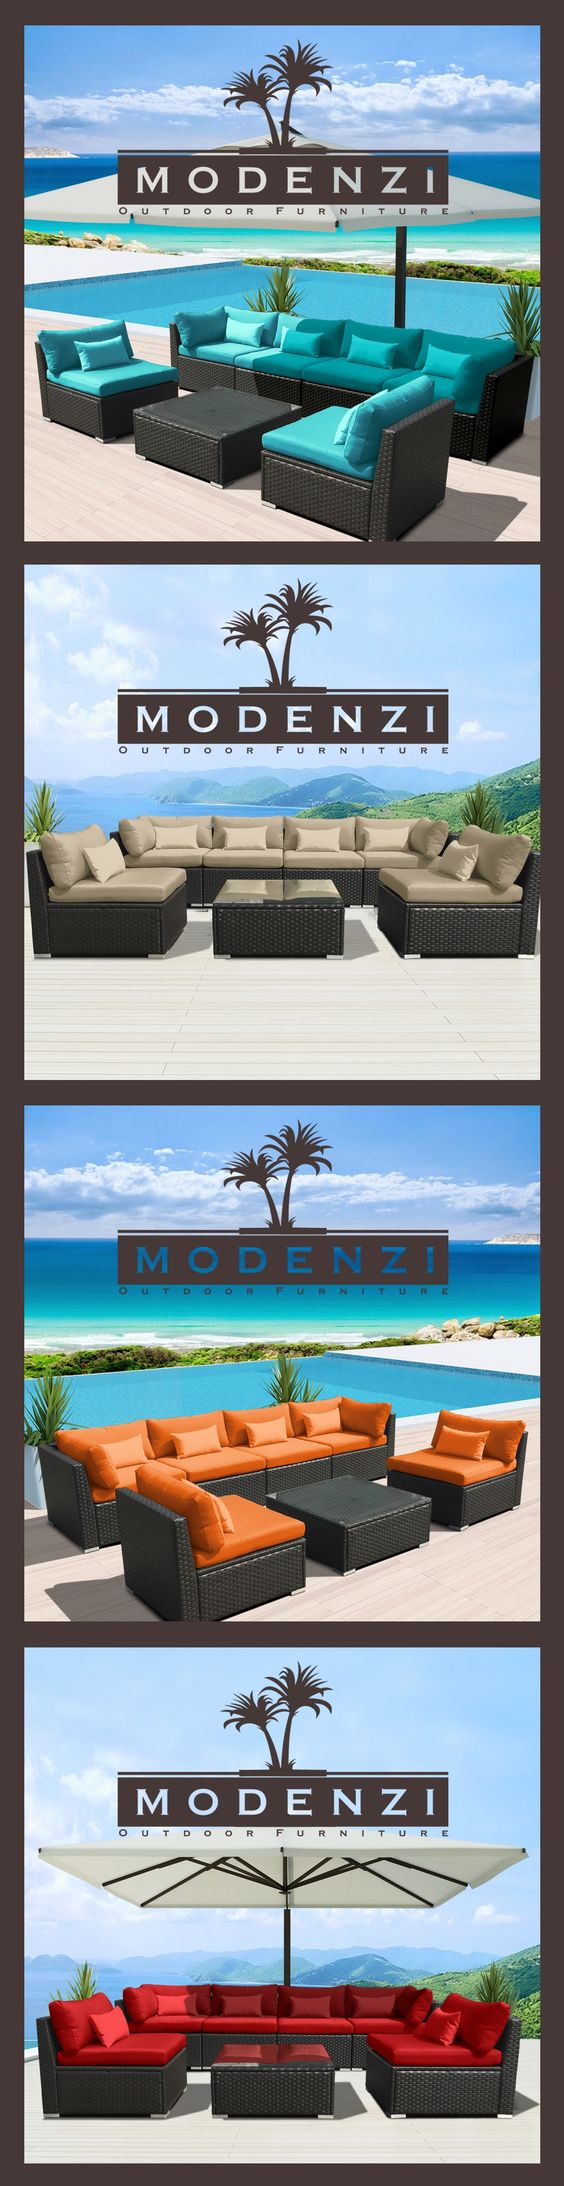 for a limited time 599 modenzi 7pc outdoor patio furniture